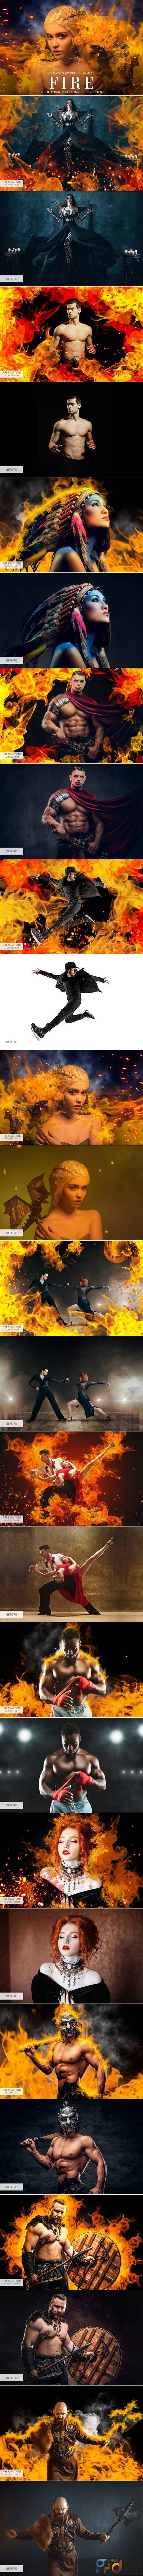 Fire Actions Photoshop 5328474 1